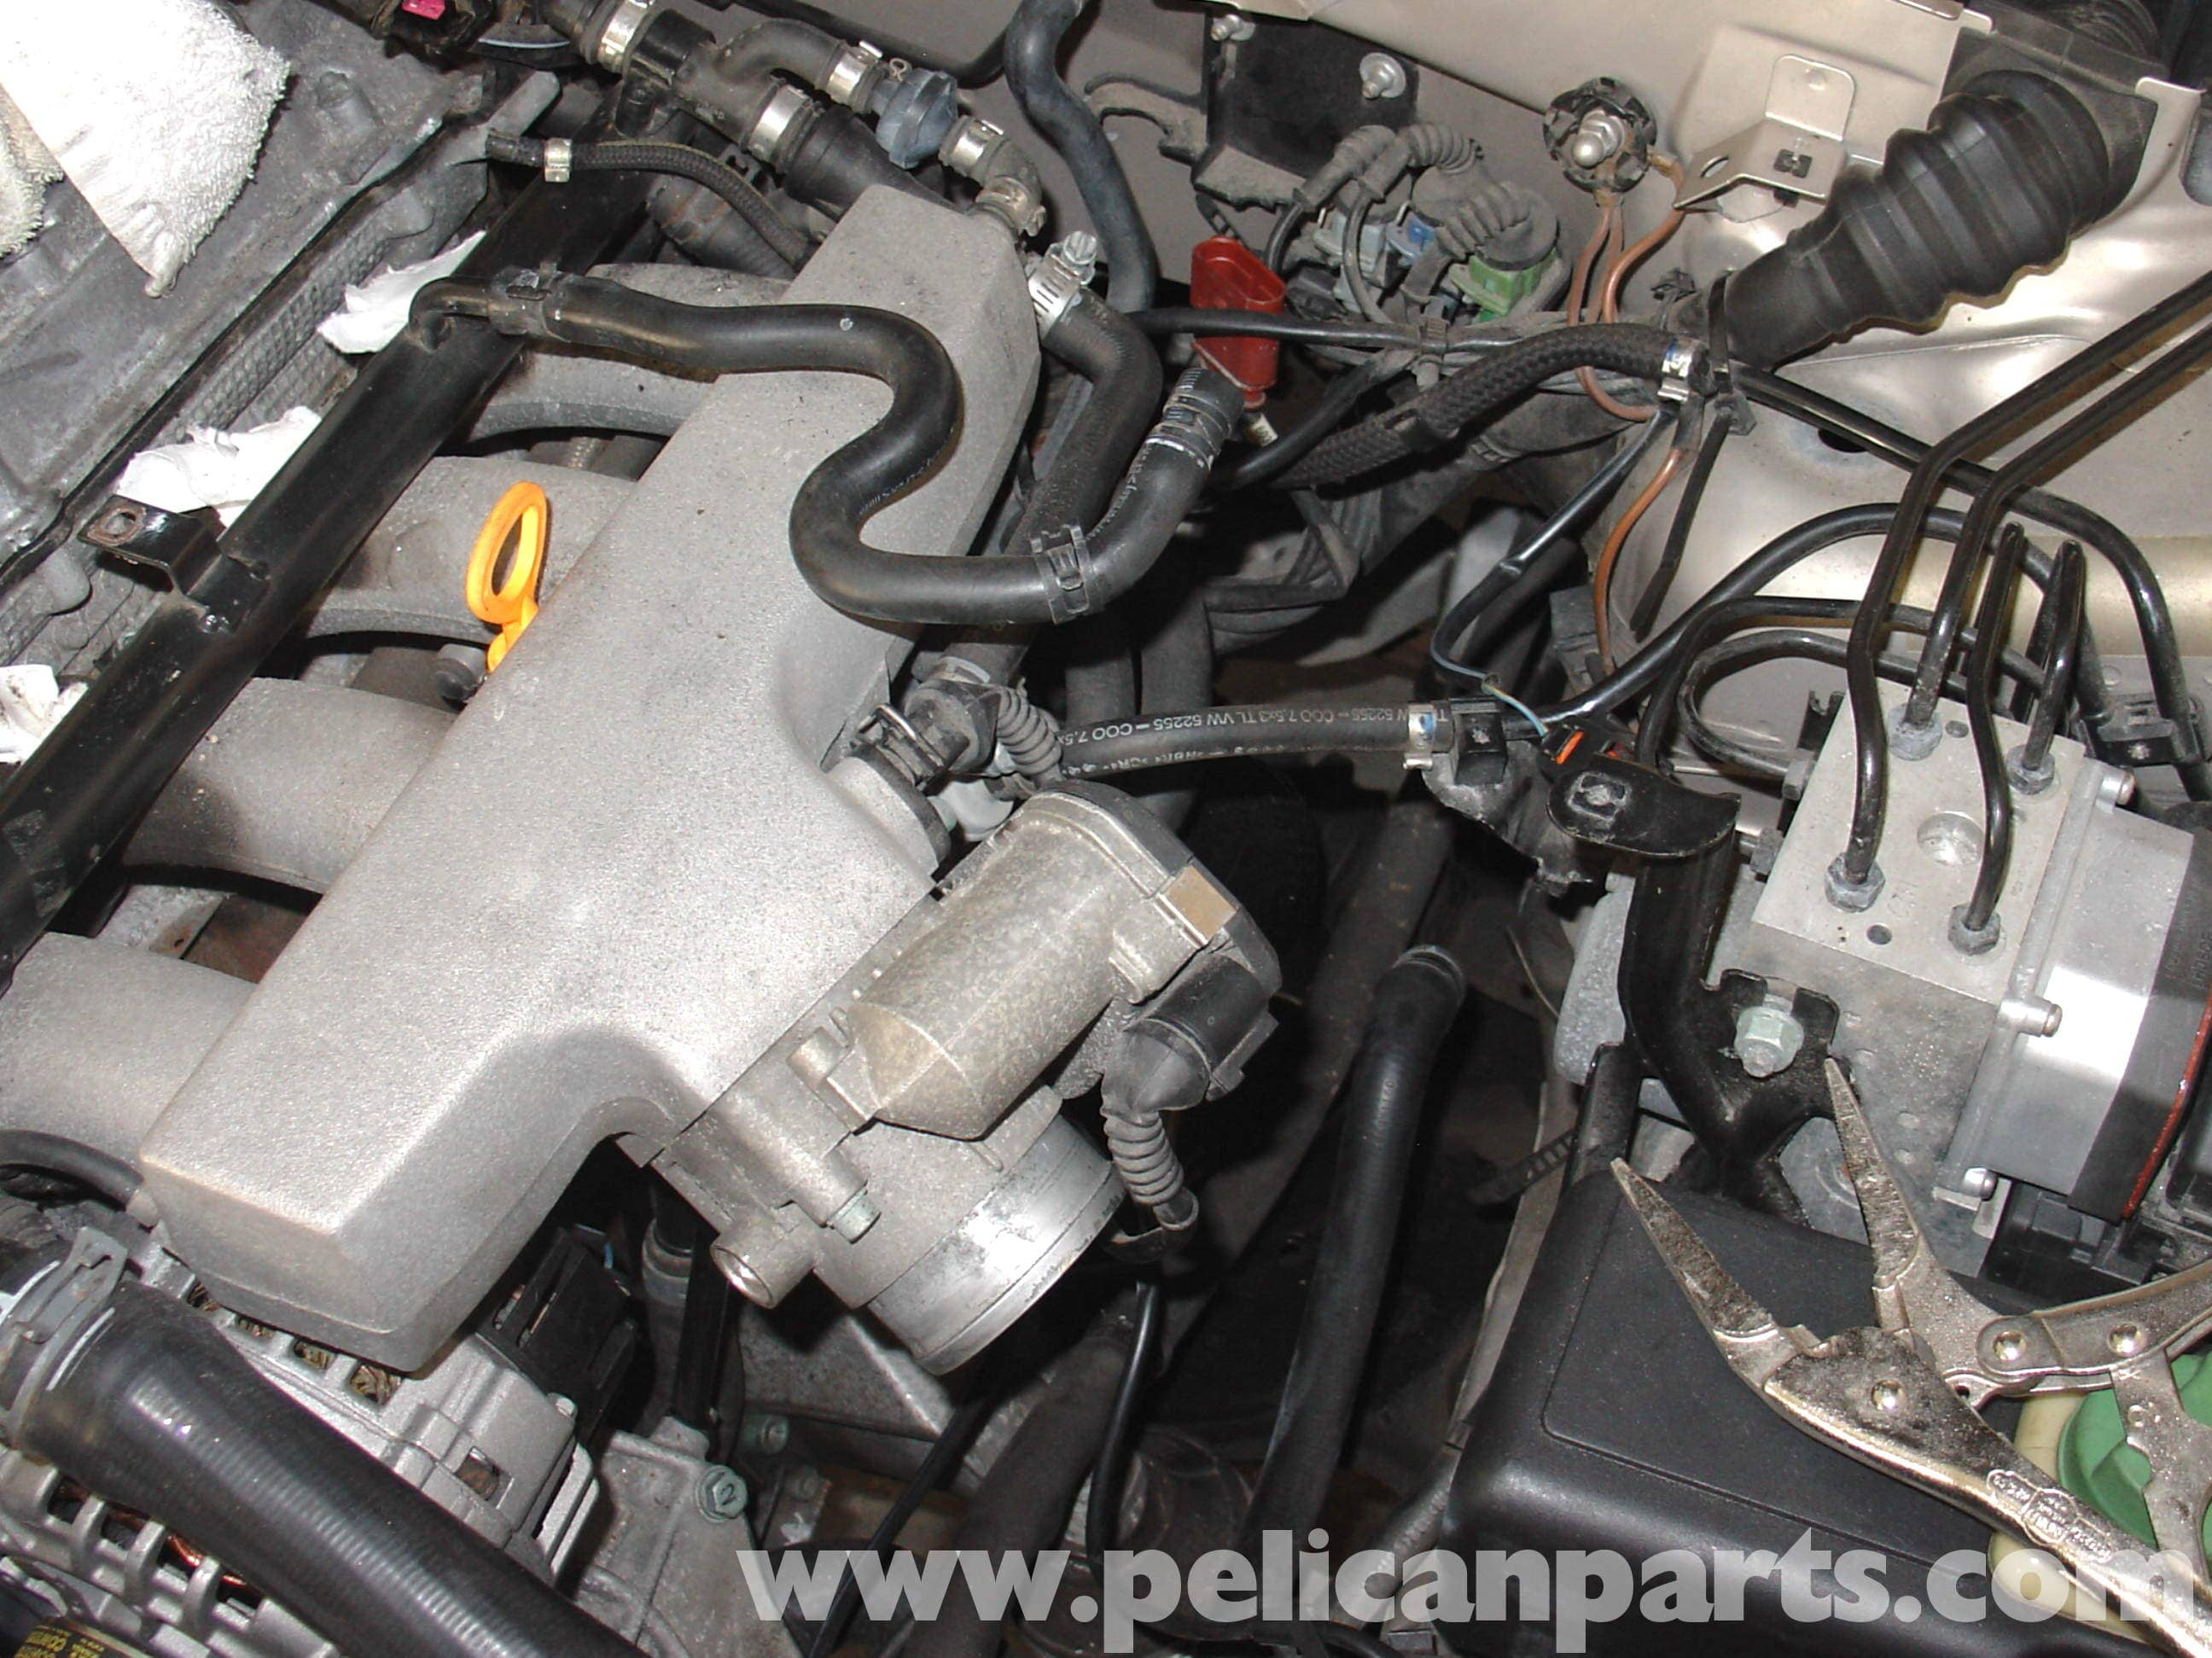 Wiring Diagram 2004 Audi S4 B6 V8 Engine 2009 Vw Jetta 2 5 Engine